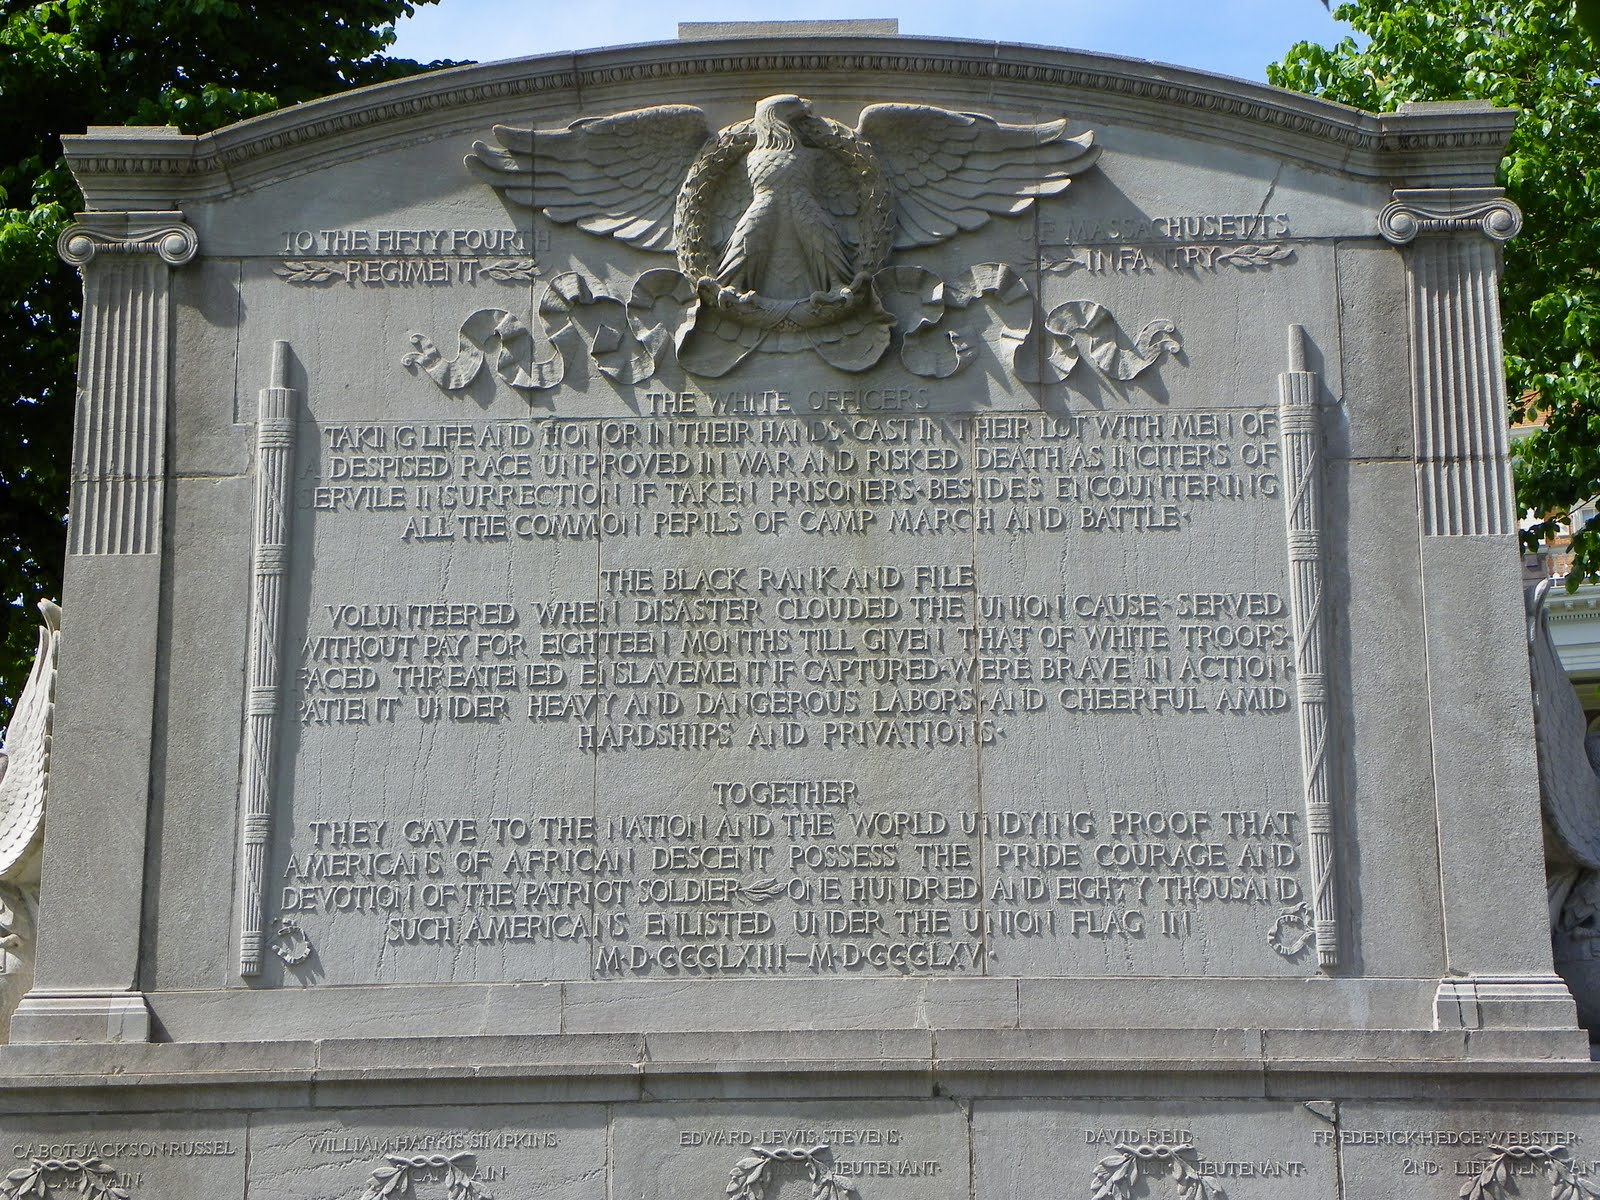 The back of the Robert Gould Shaw Memorial includes the name of the men who died at the Battle of Fort Wagner.